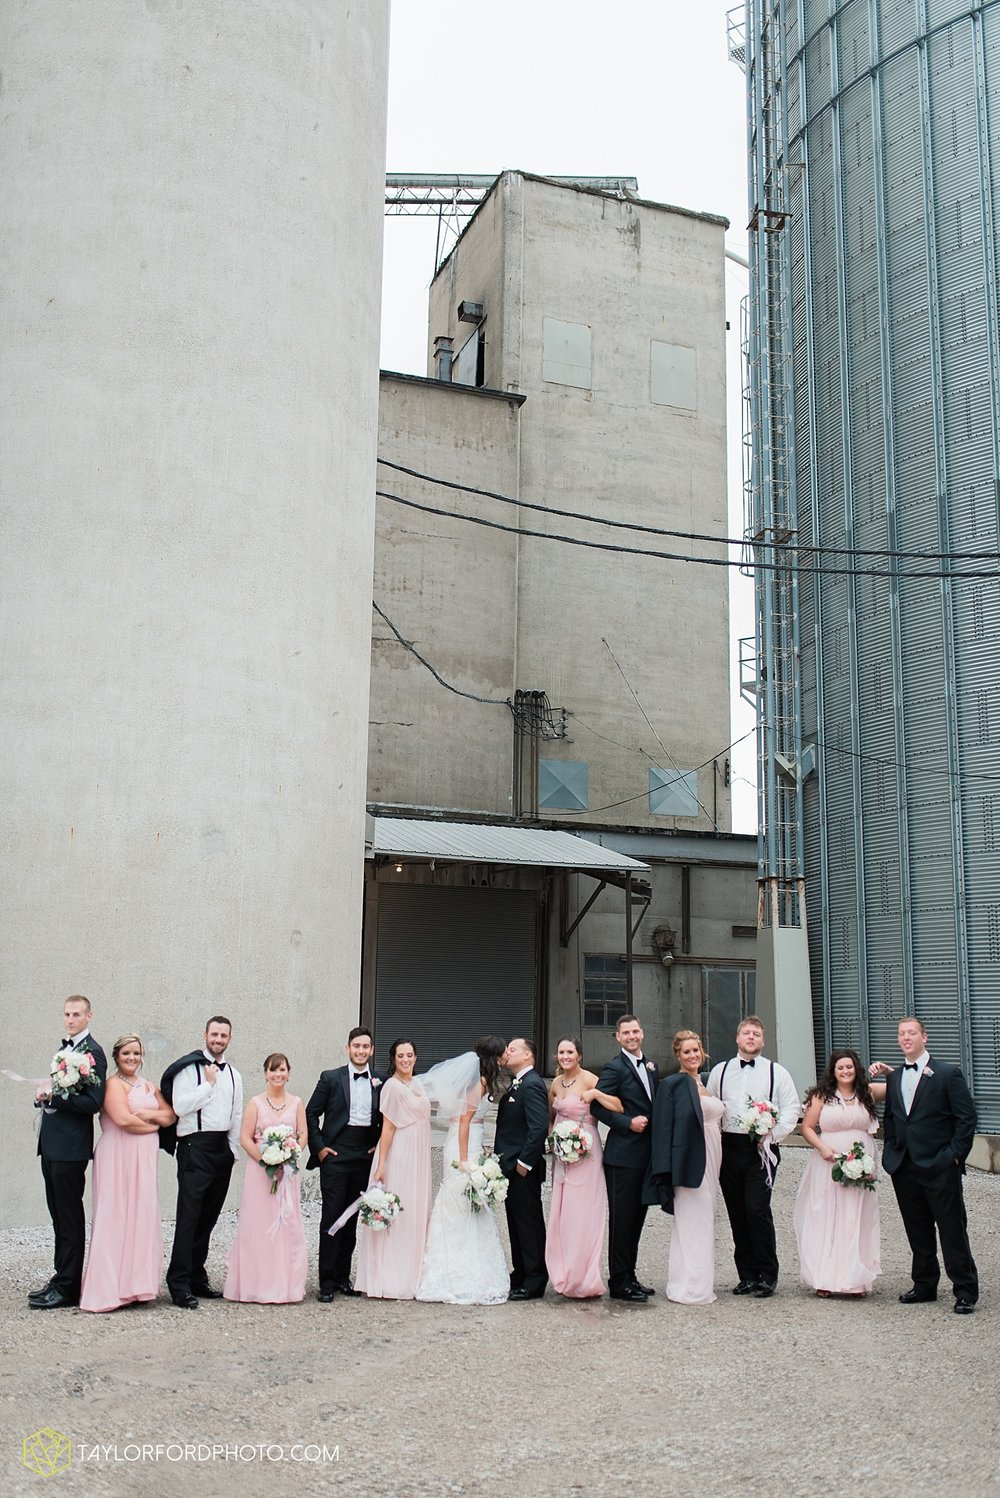 fort_wayne_indiana_wedding_photographer_taylor_ford_dupont_downs_0466.jpg